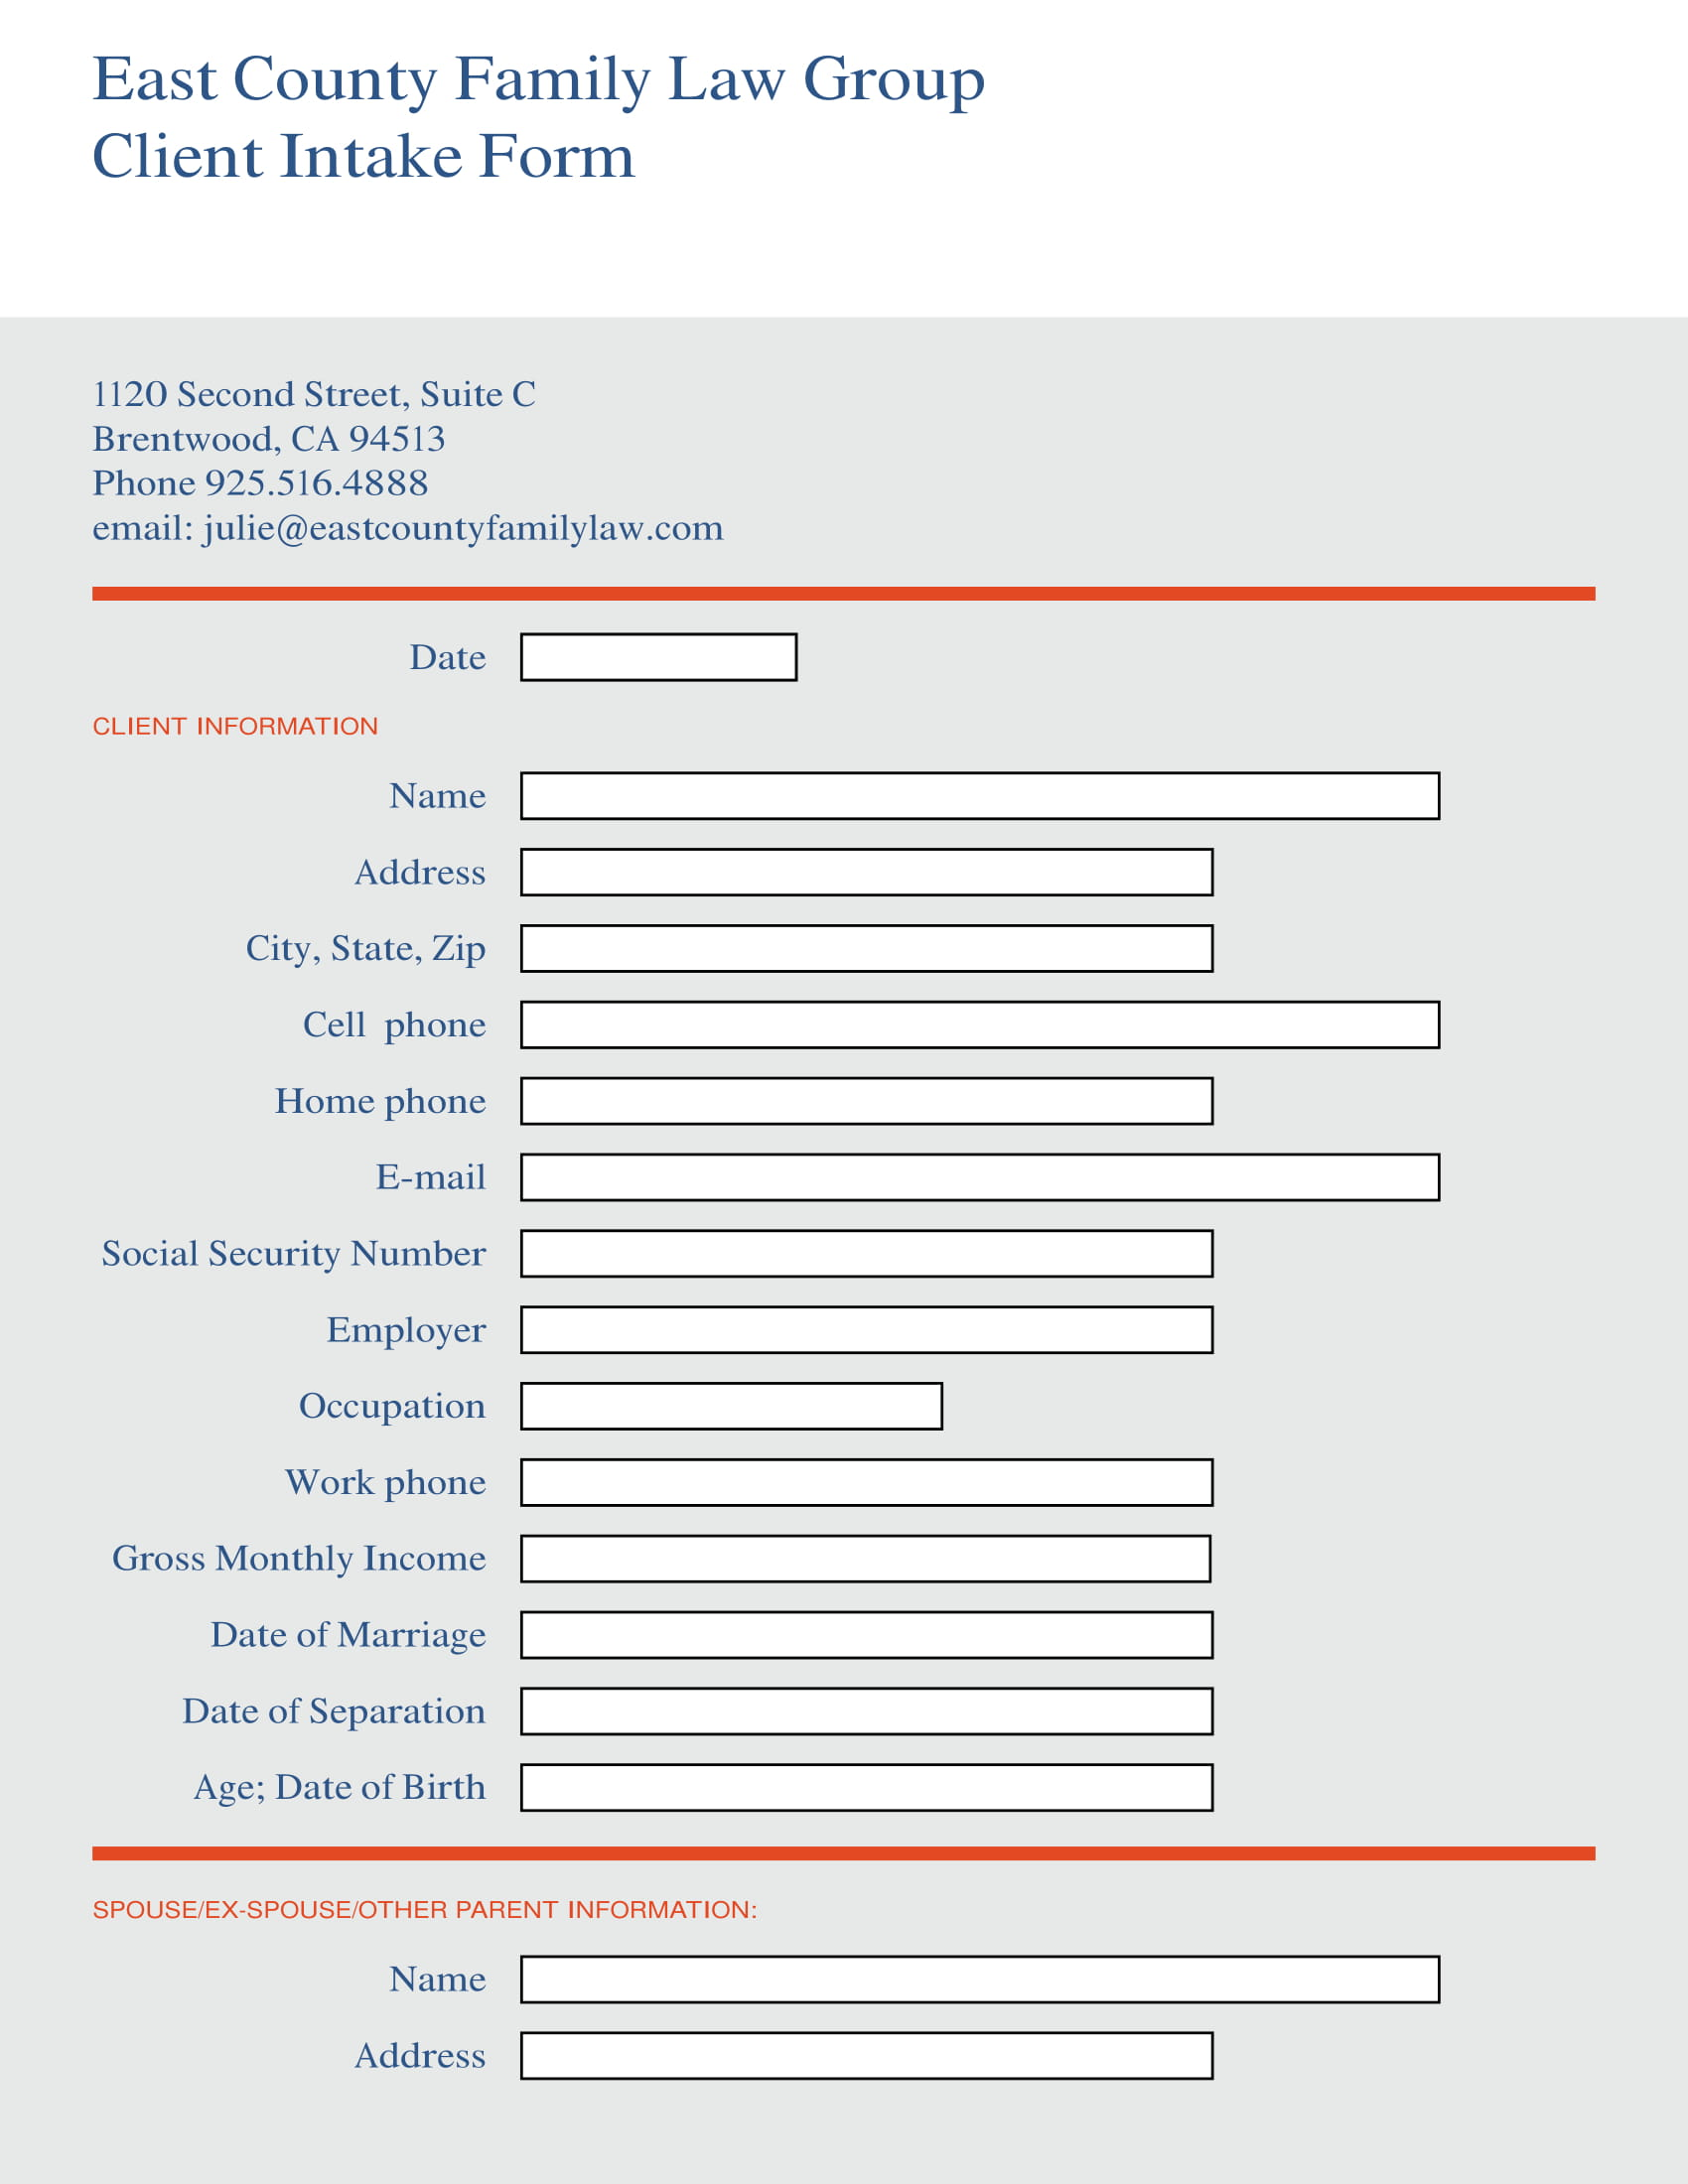 family law group client intake form 1